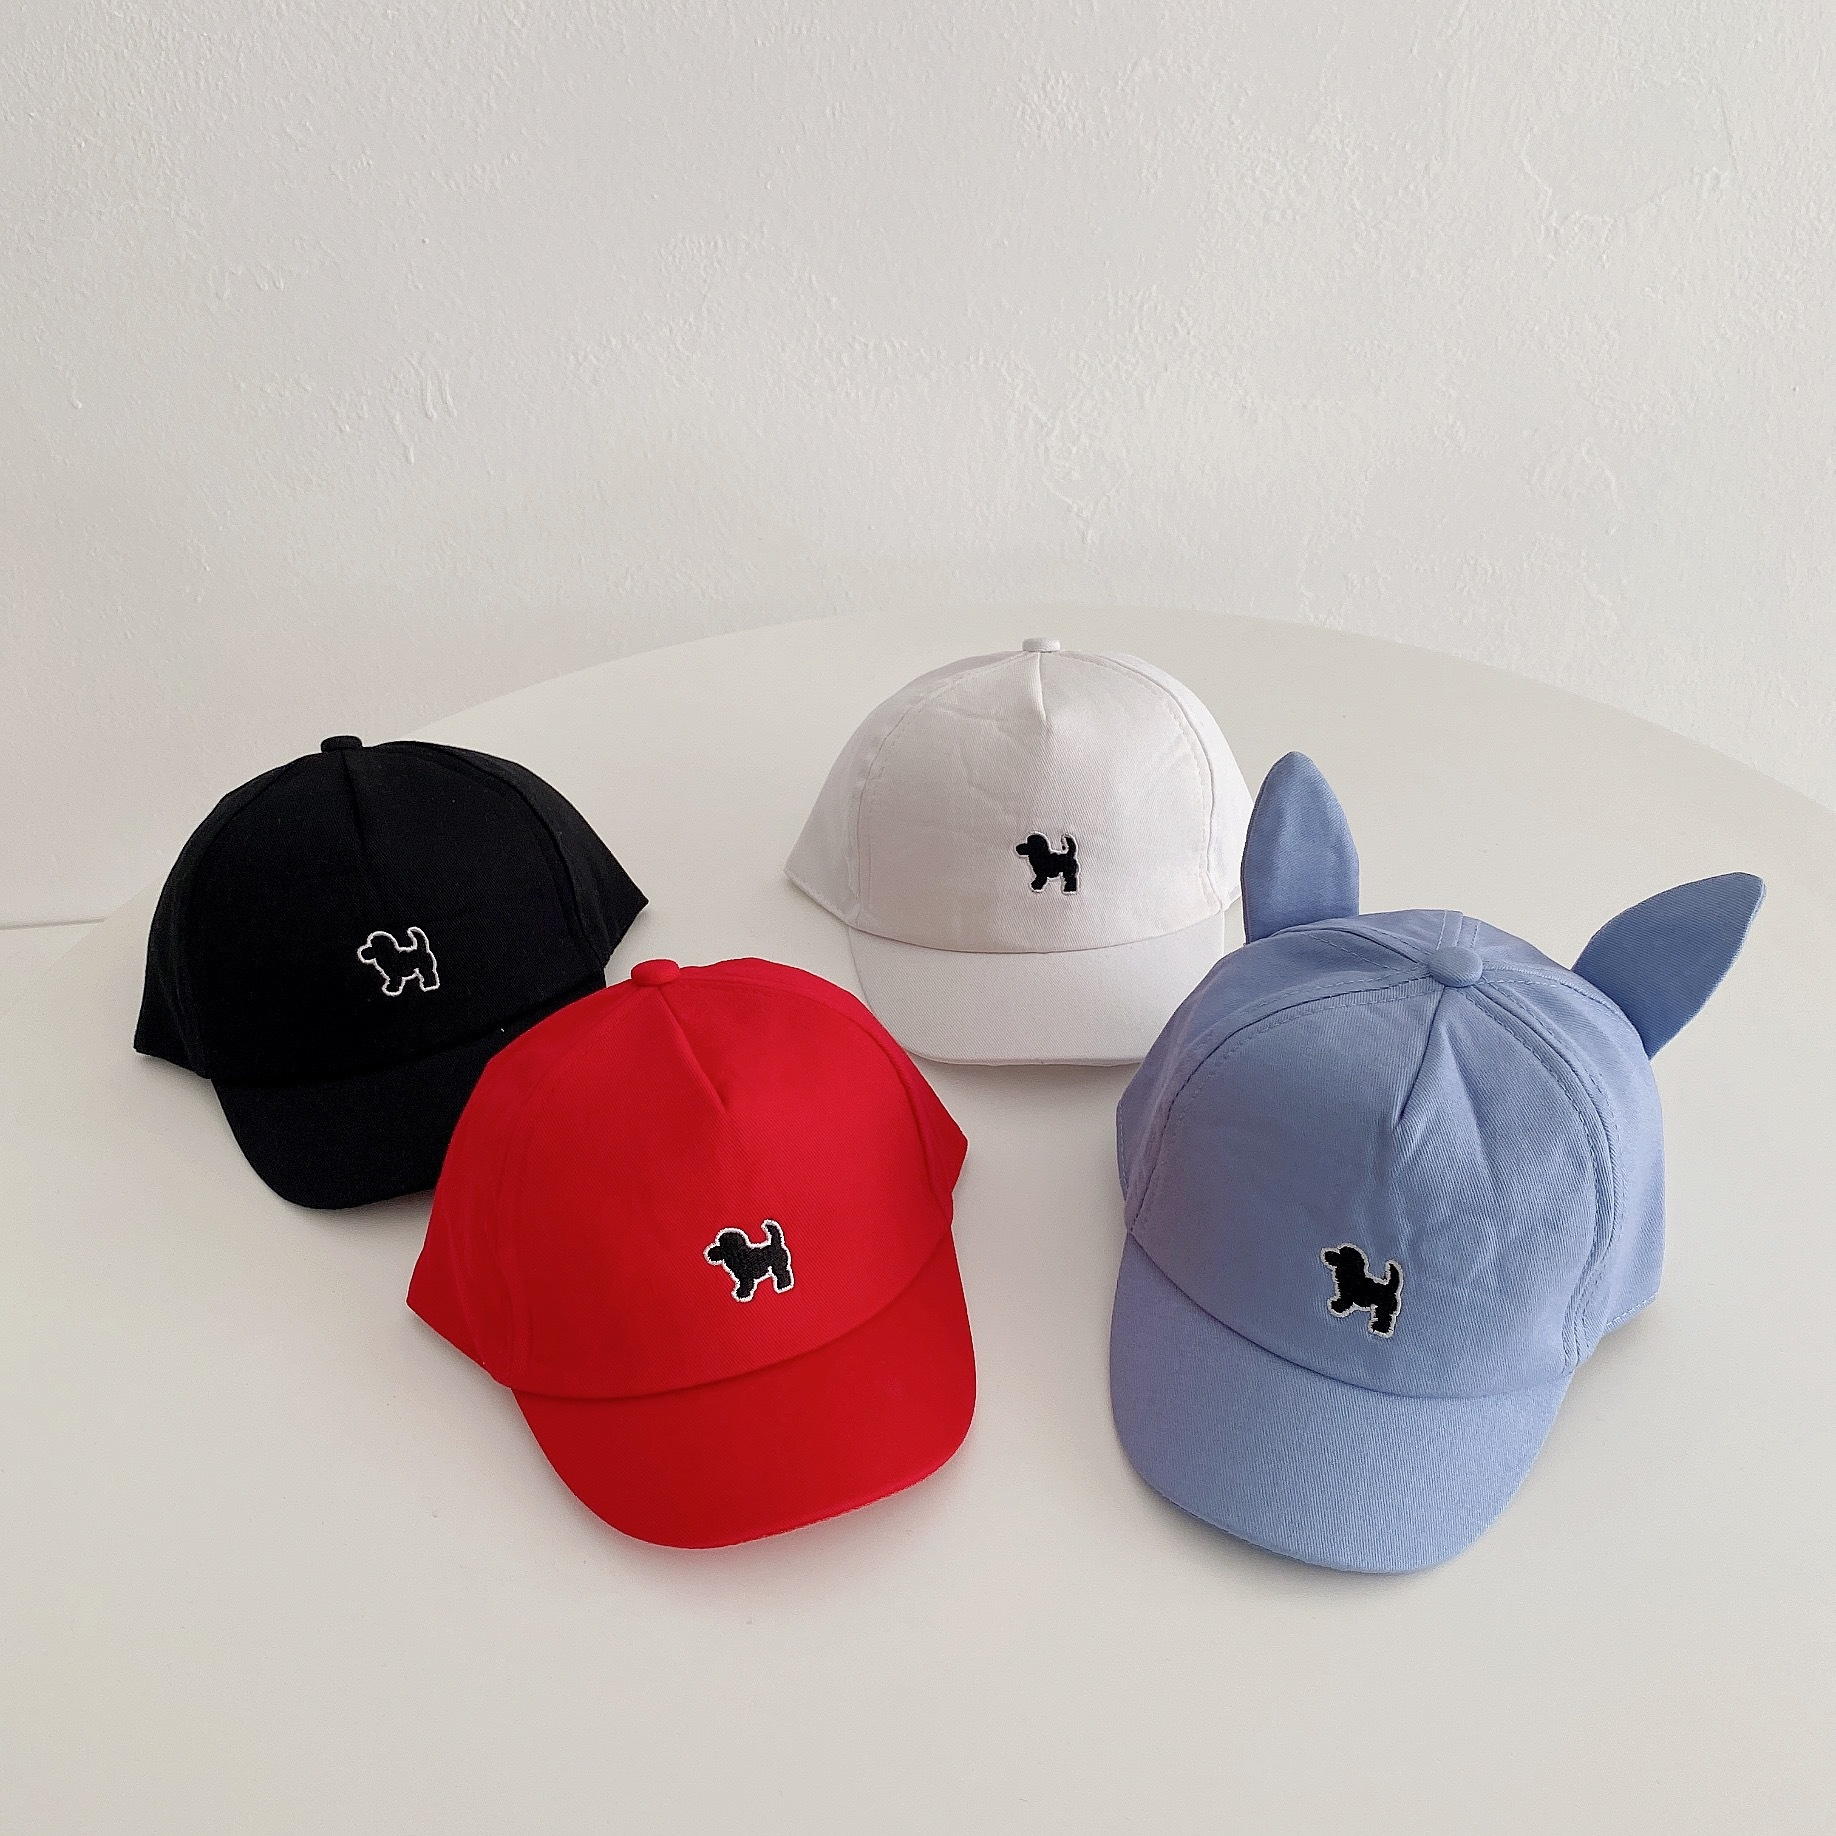 Basic Cap with Mini Dog Design for Daily Wear